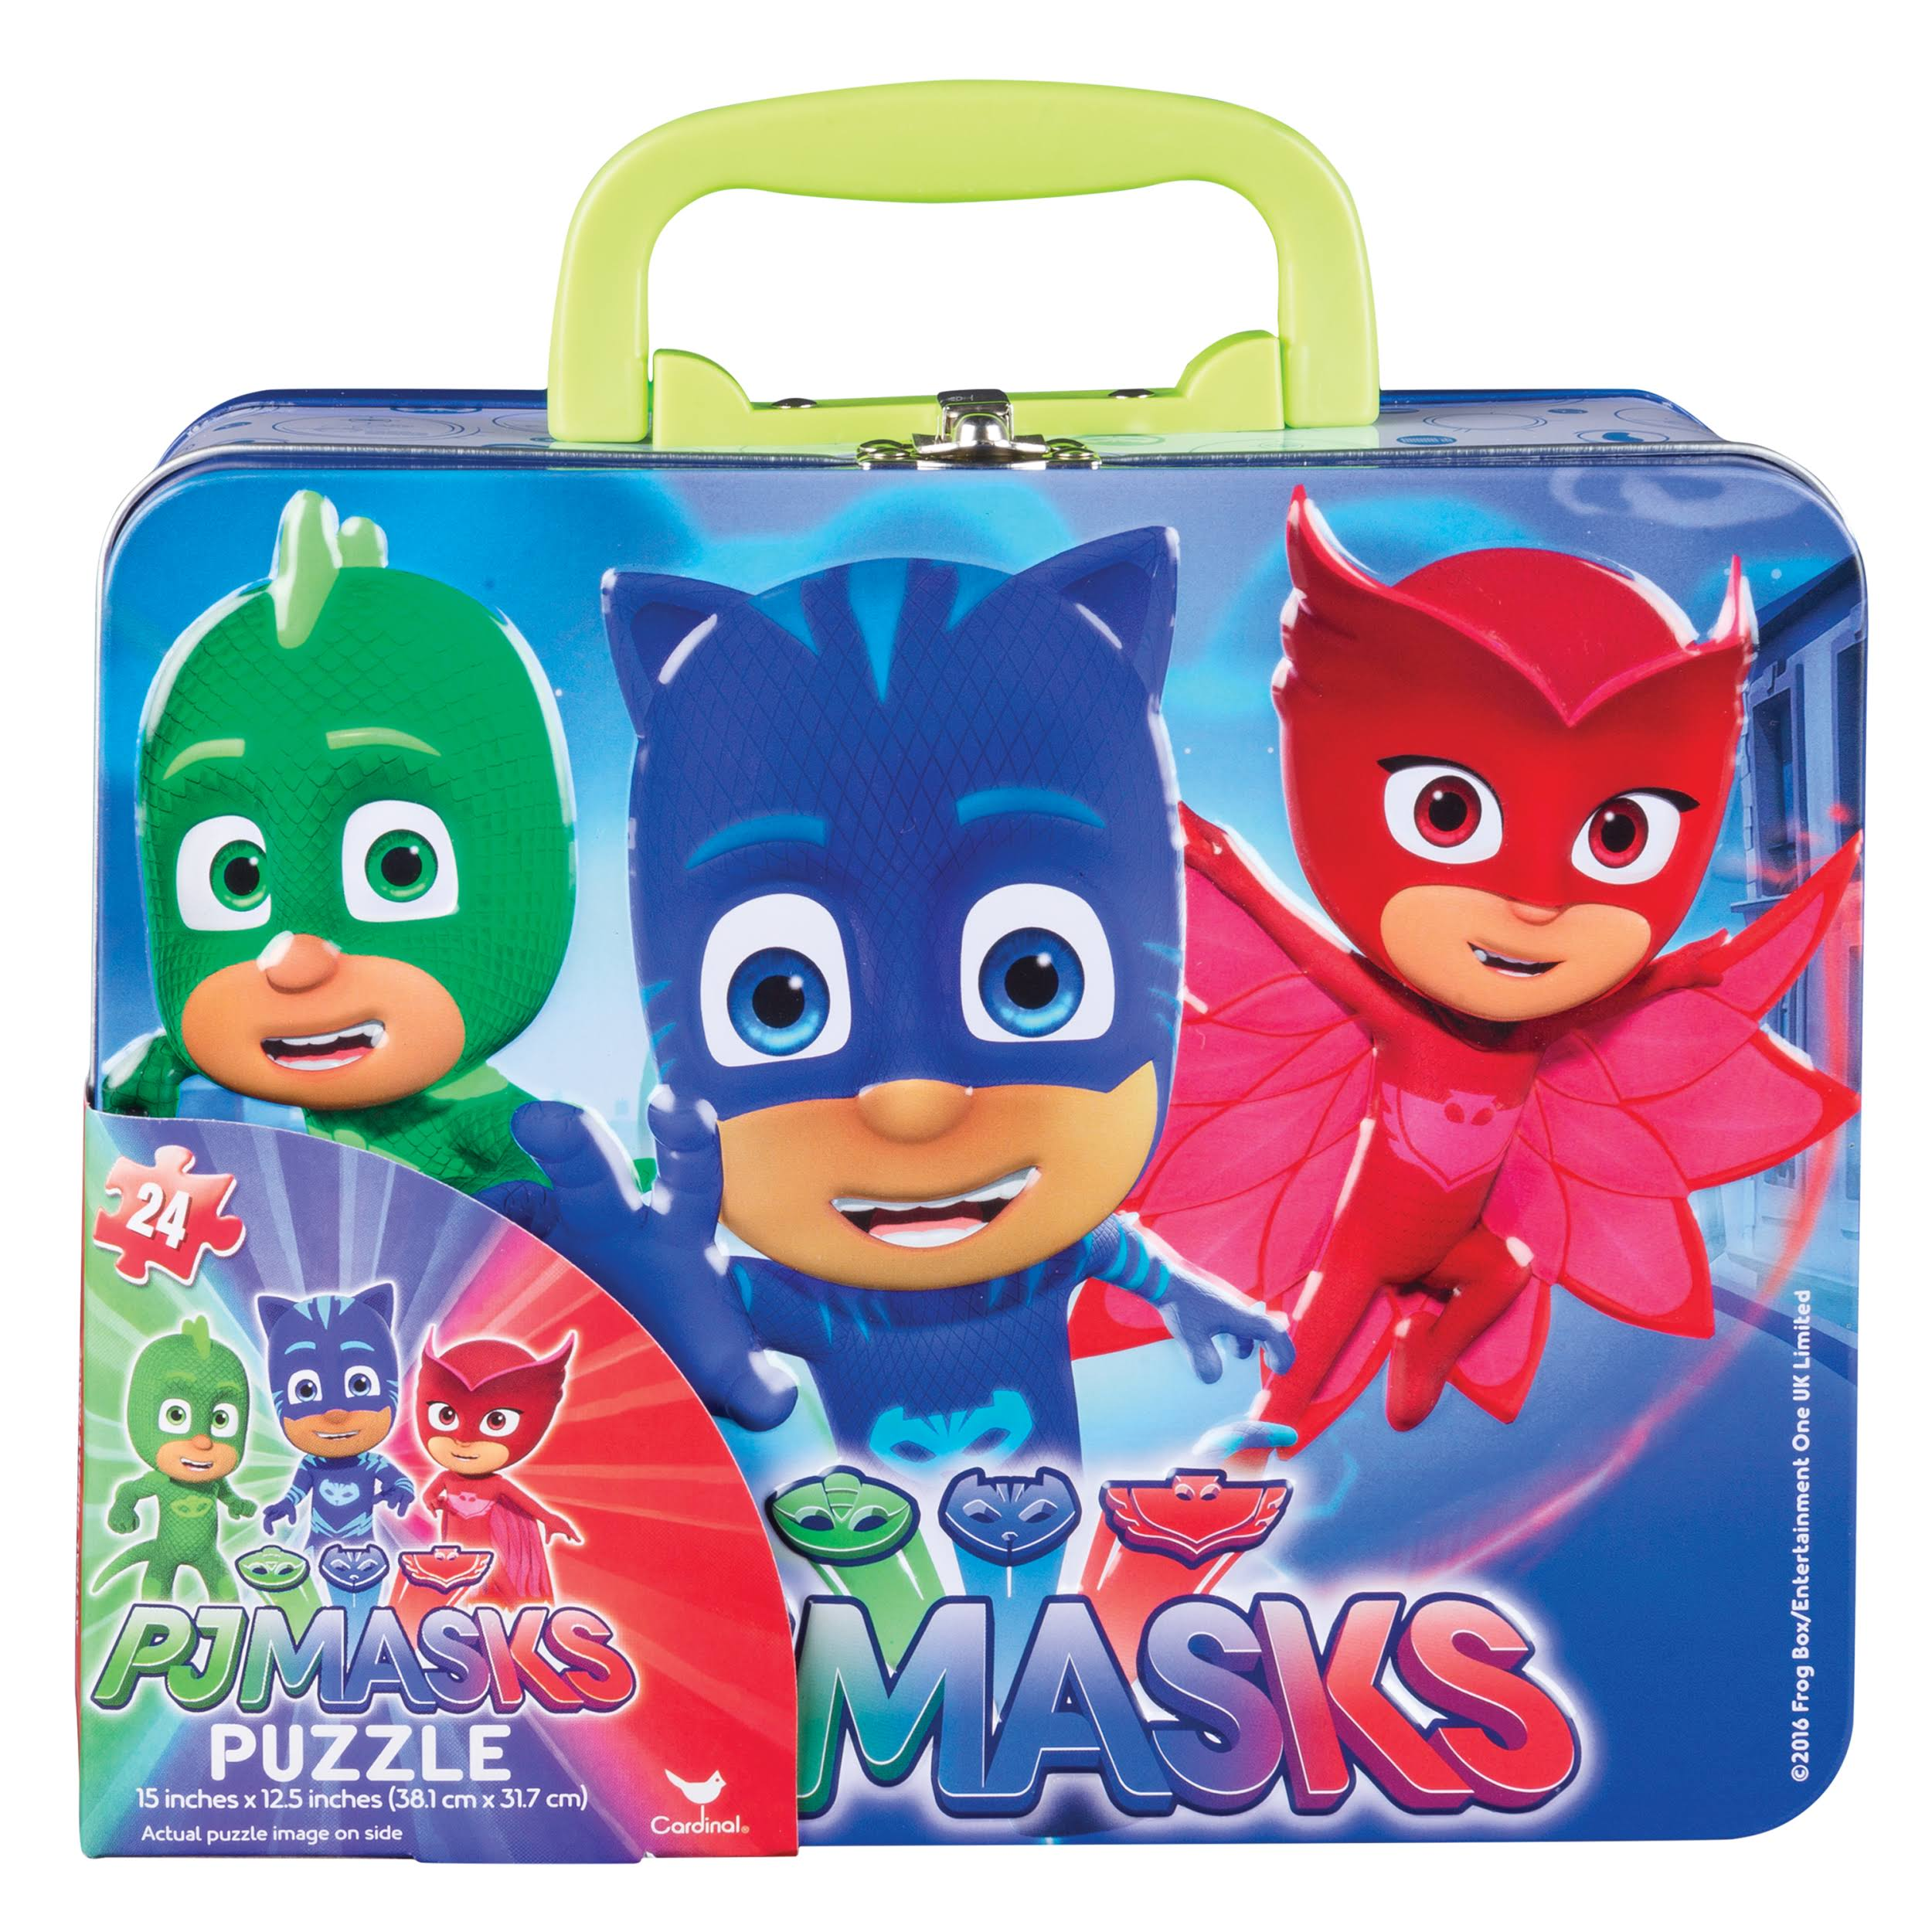 PJ Masks Lunch Box Tin with Handle Themed Jigsaw Puzzle - 24pcs